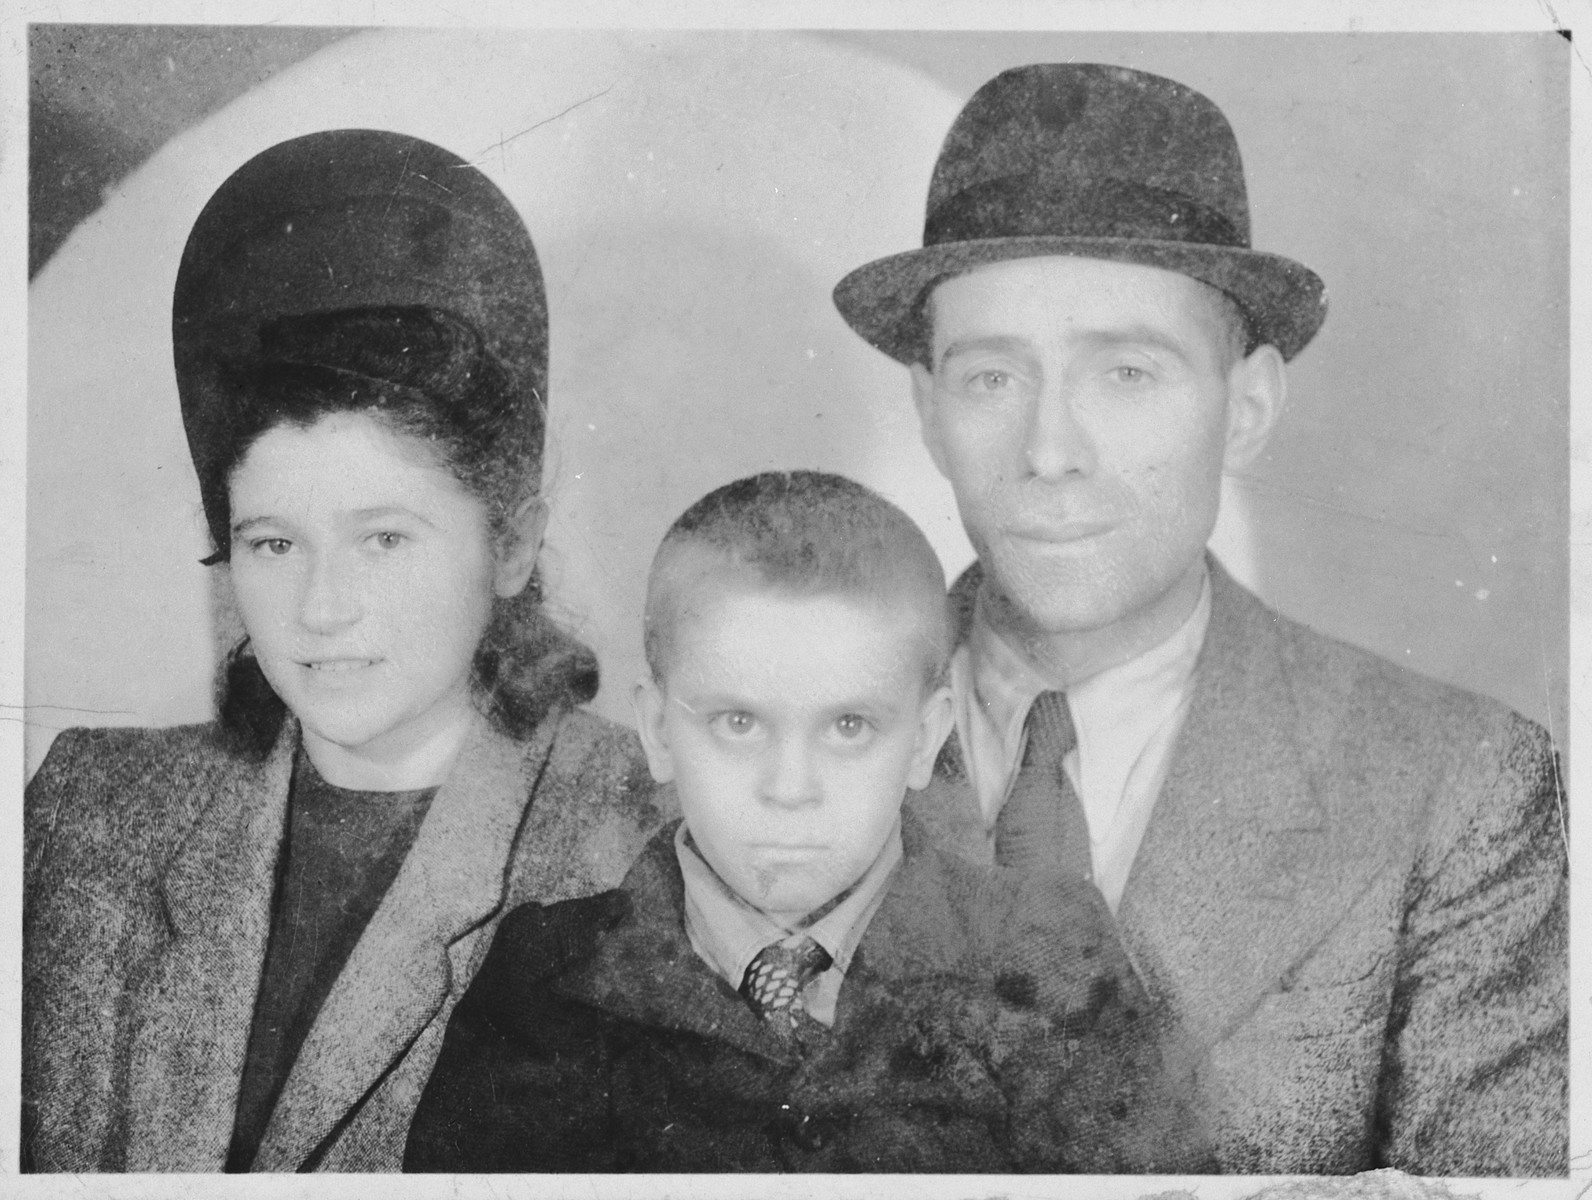 Rabbi and Mrs. Simcha Rotenfeld pose with an adopted orphan who had survived the war in hiding while en route to England.  Pictured from left to right are Sonya Rotenfeld, Elek Rebensztok and Rabbi Simcha Rotenfeld.